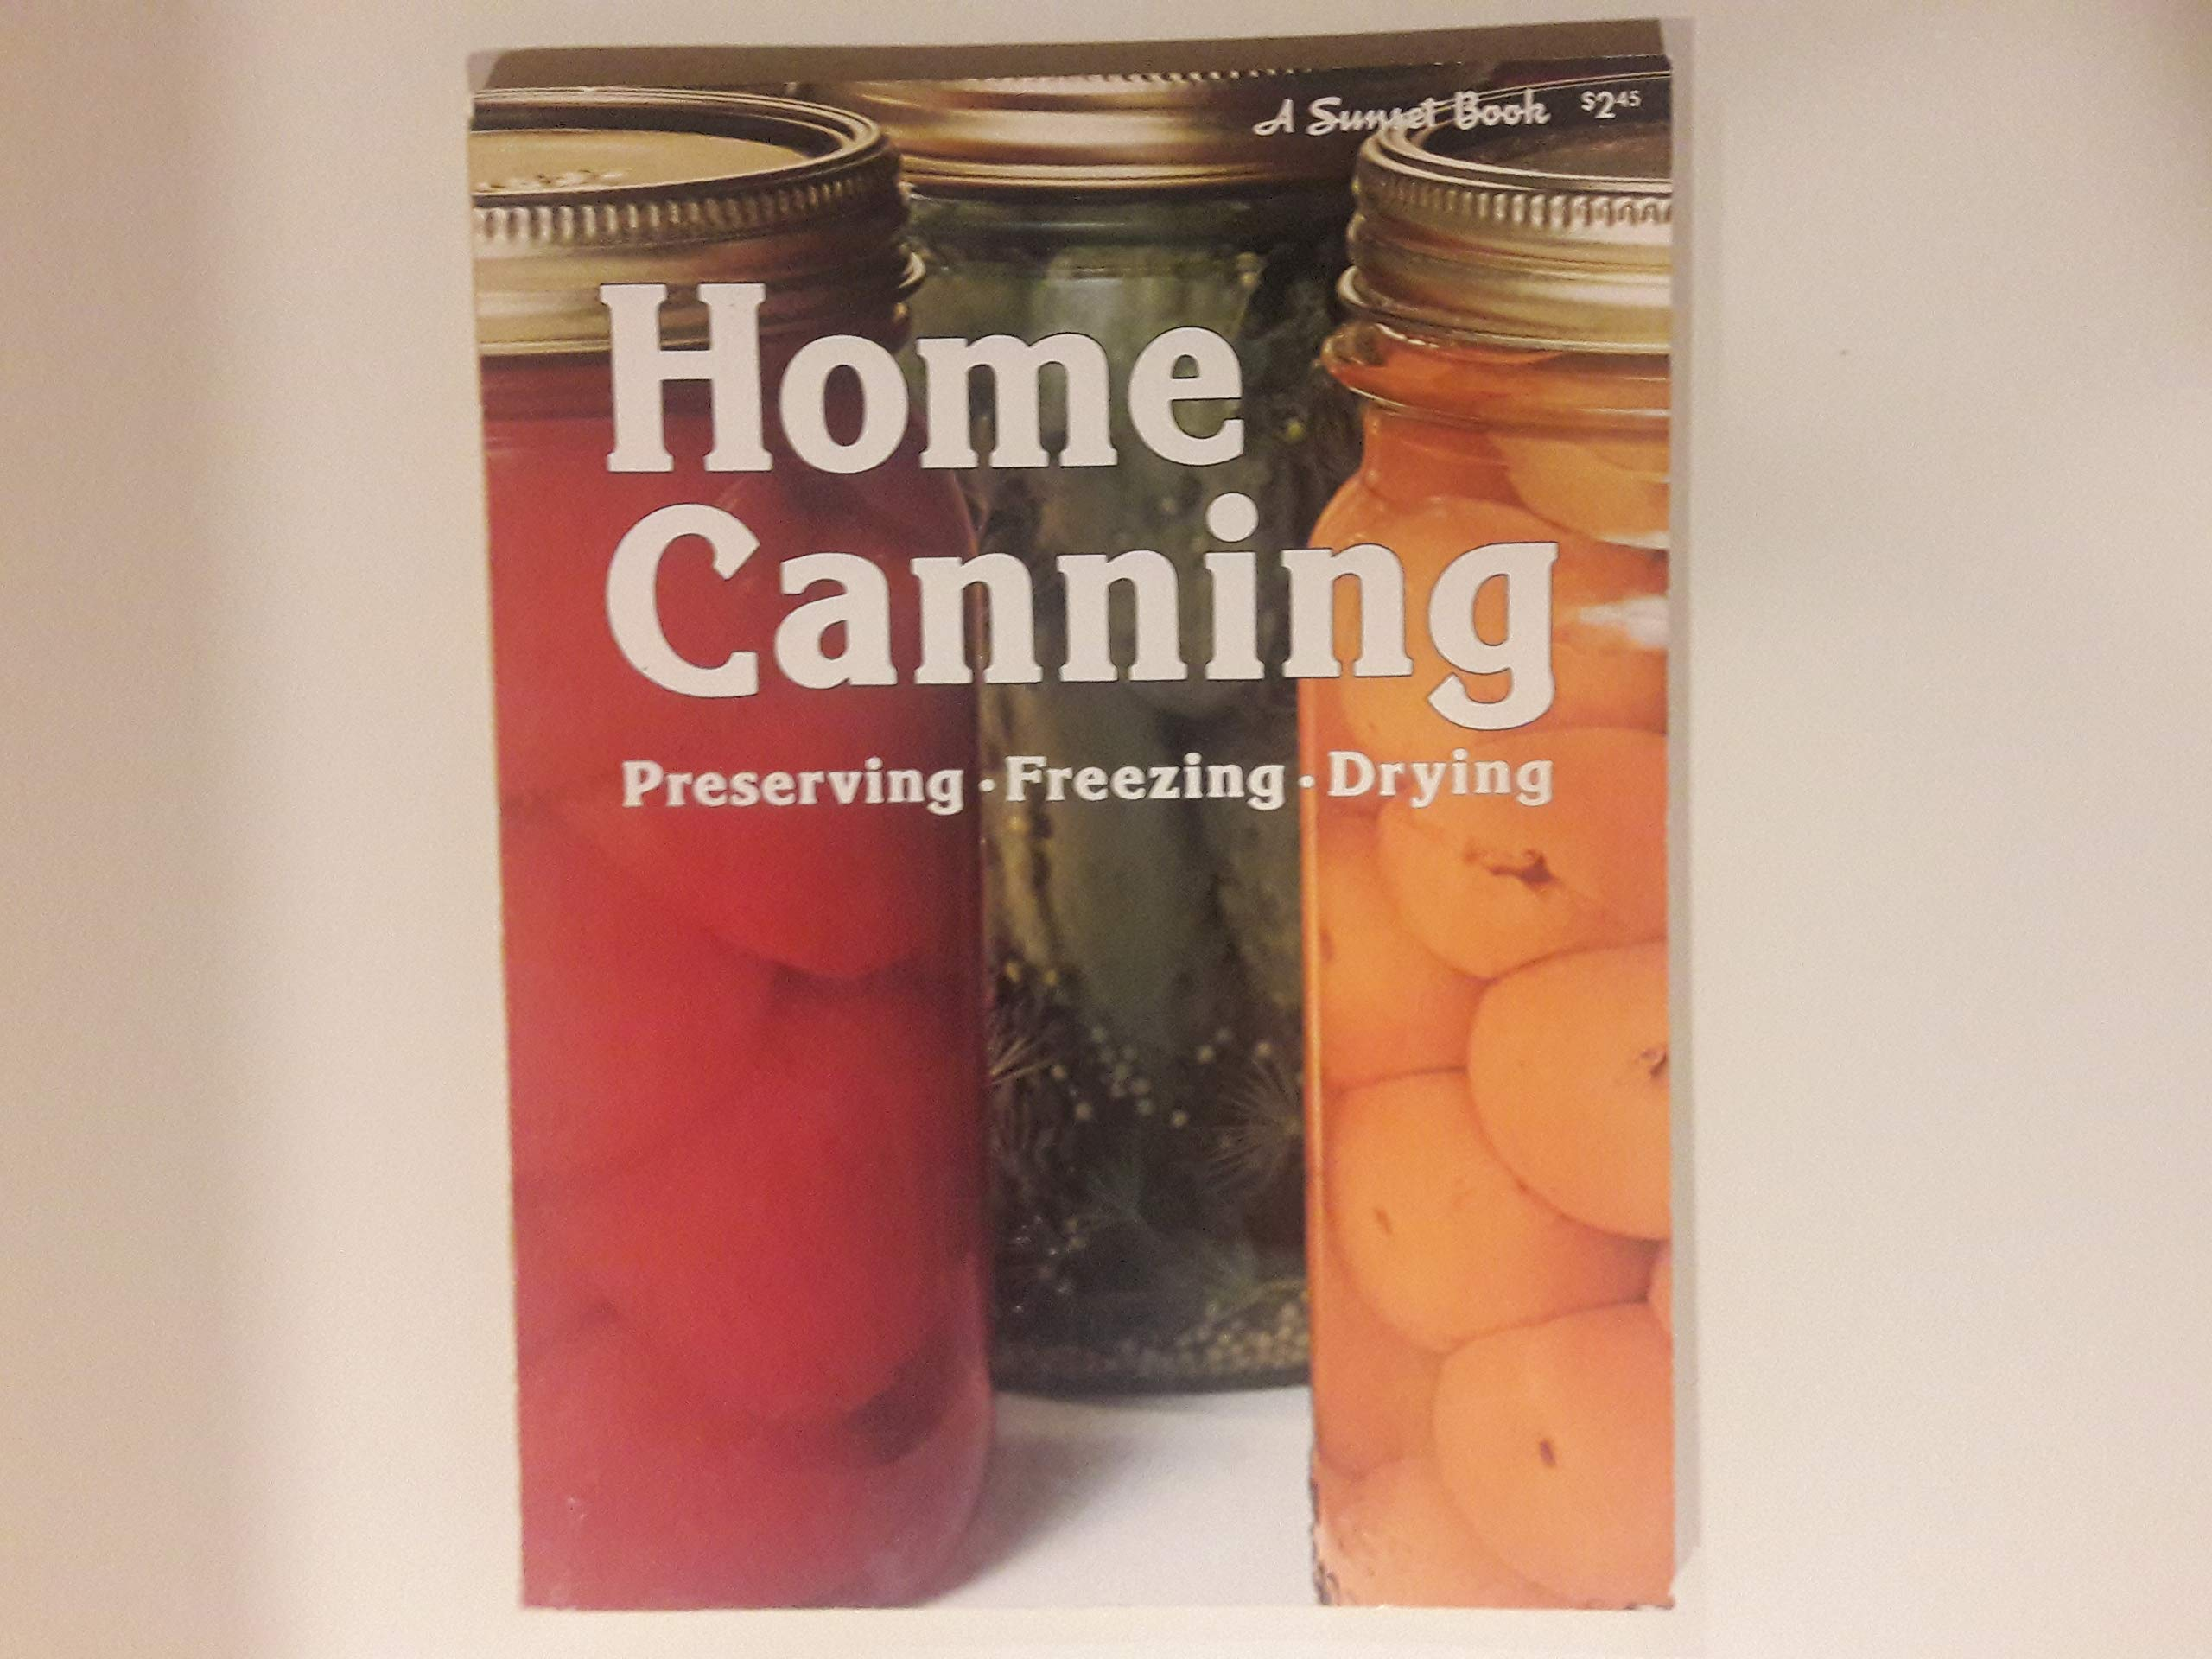 Image OfSunset Home Canning: Preserving, Freezing, Drying